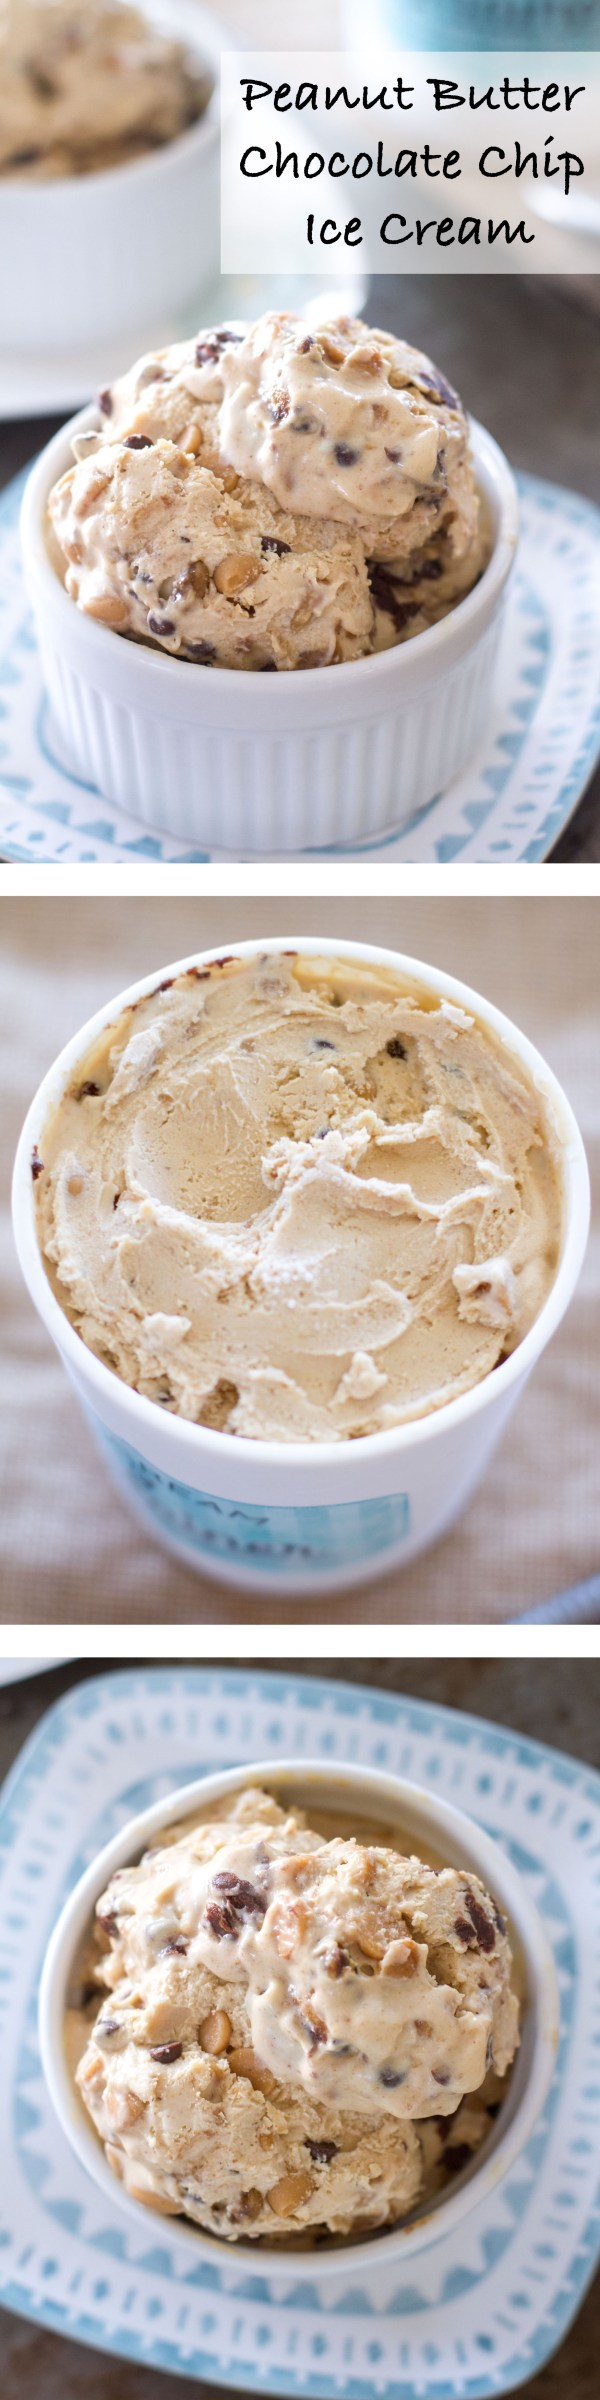 Double Chocolate Peanut Butter Ice Cream Recipe — Dishmaps